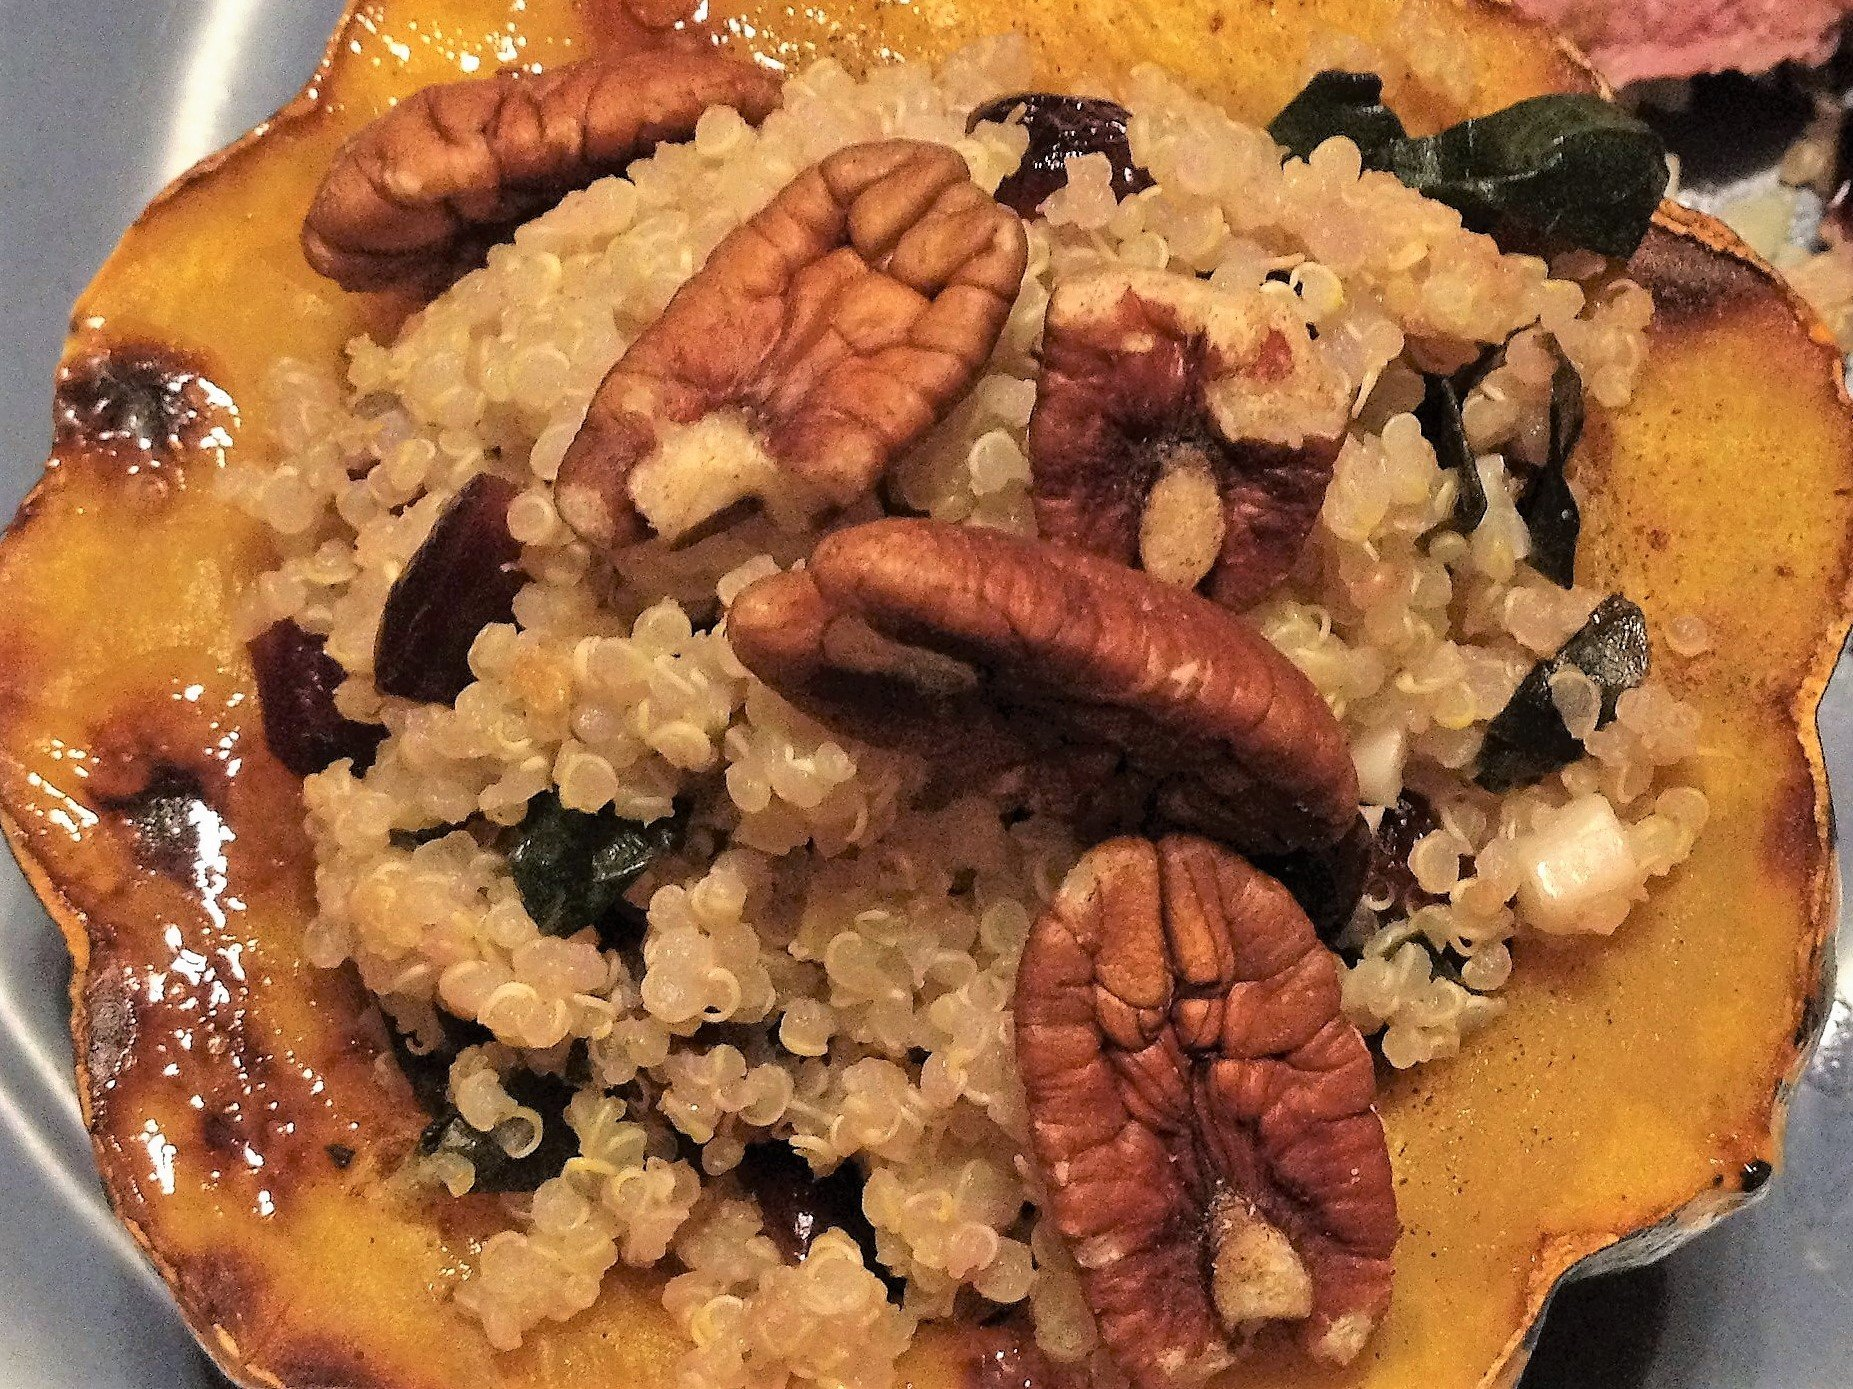 Quinoa and Kale-Stuffed Acorn Squash